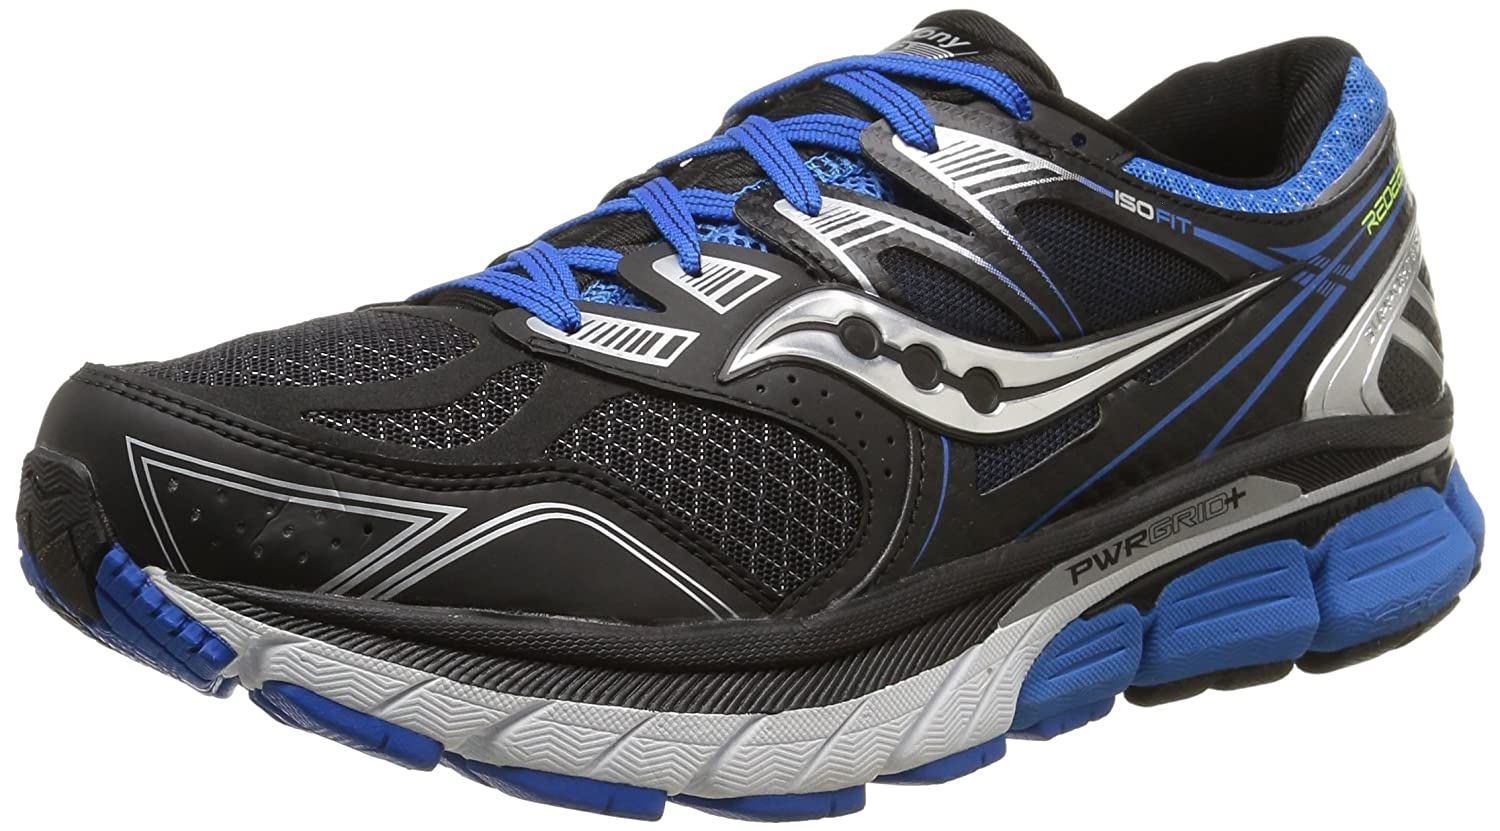 Buy Saucony Redeemer ISO 2 Wide at Amazon.in